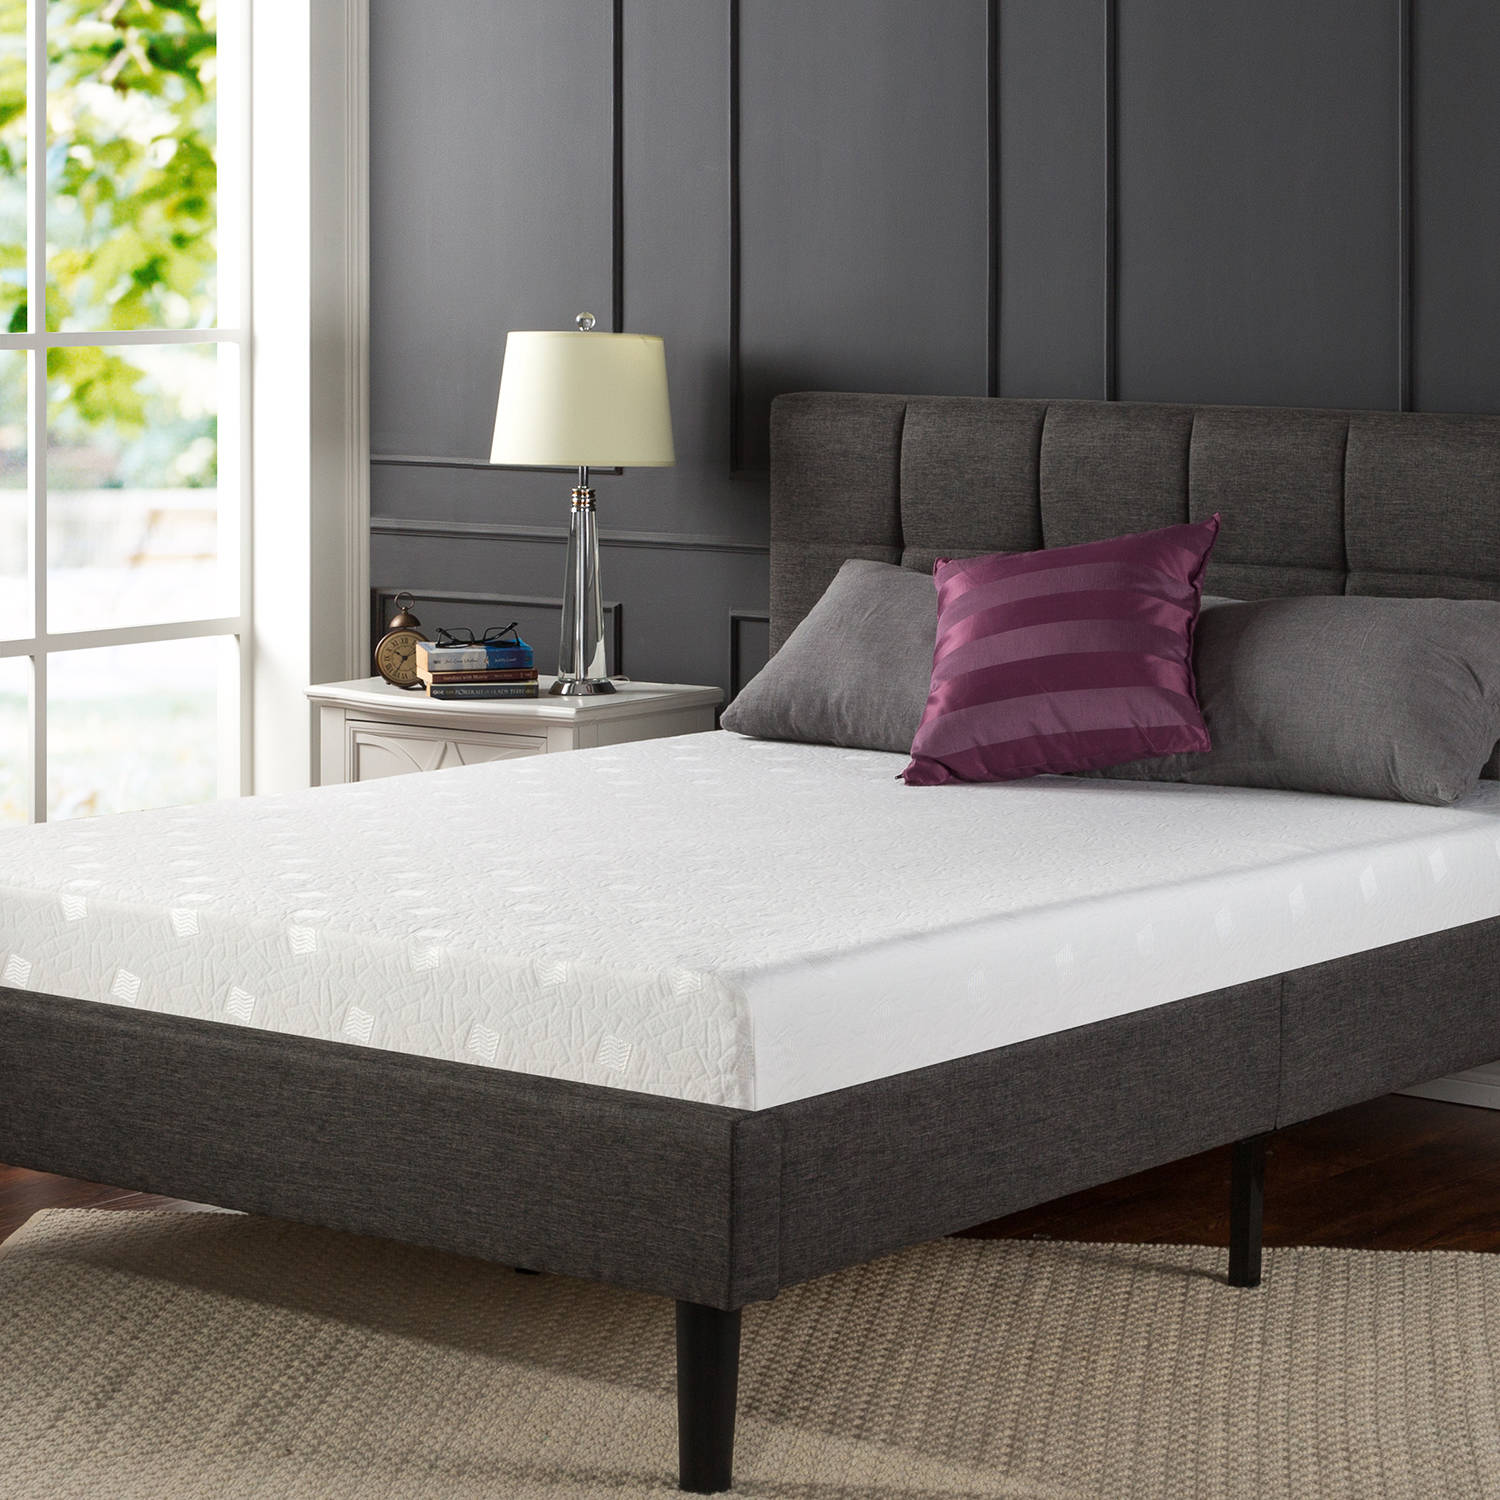 "Spa Sensations 6"" Memory Foam Comfort Mattress"